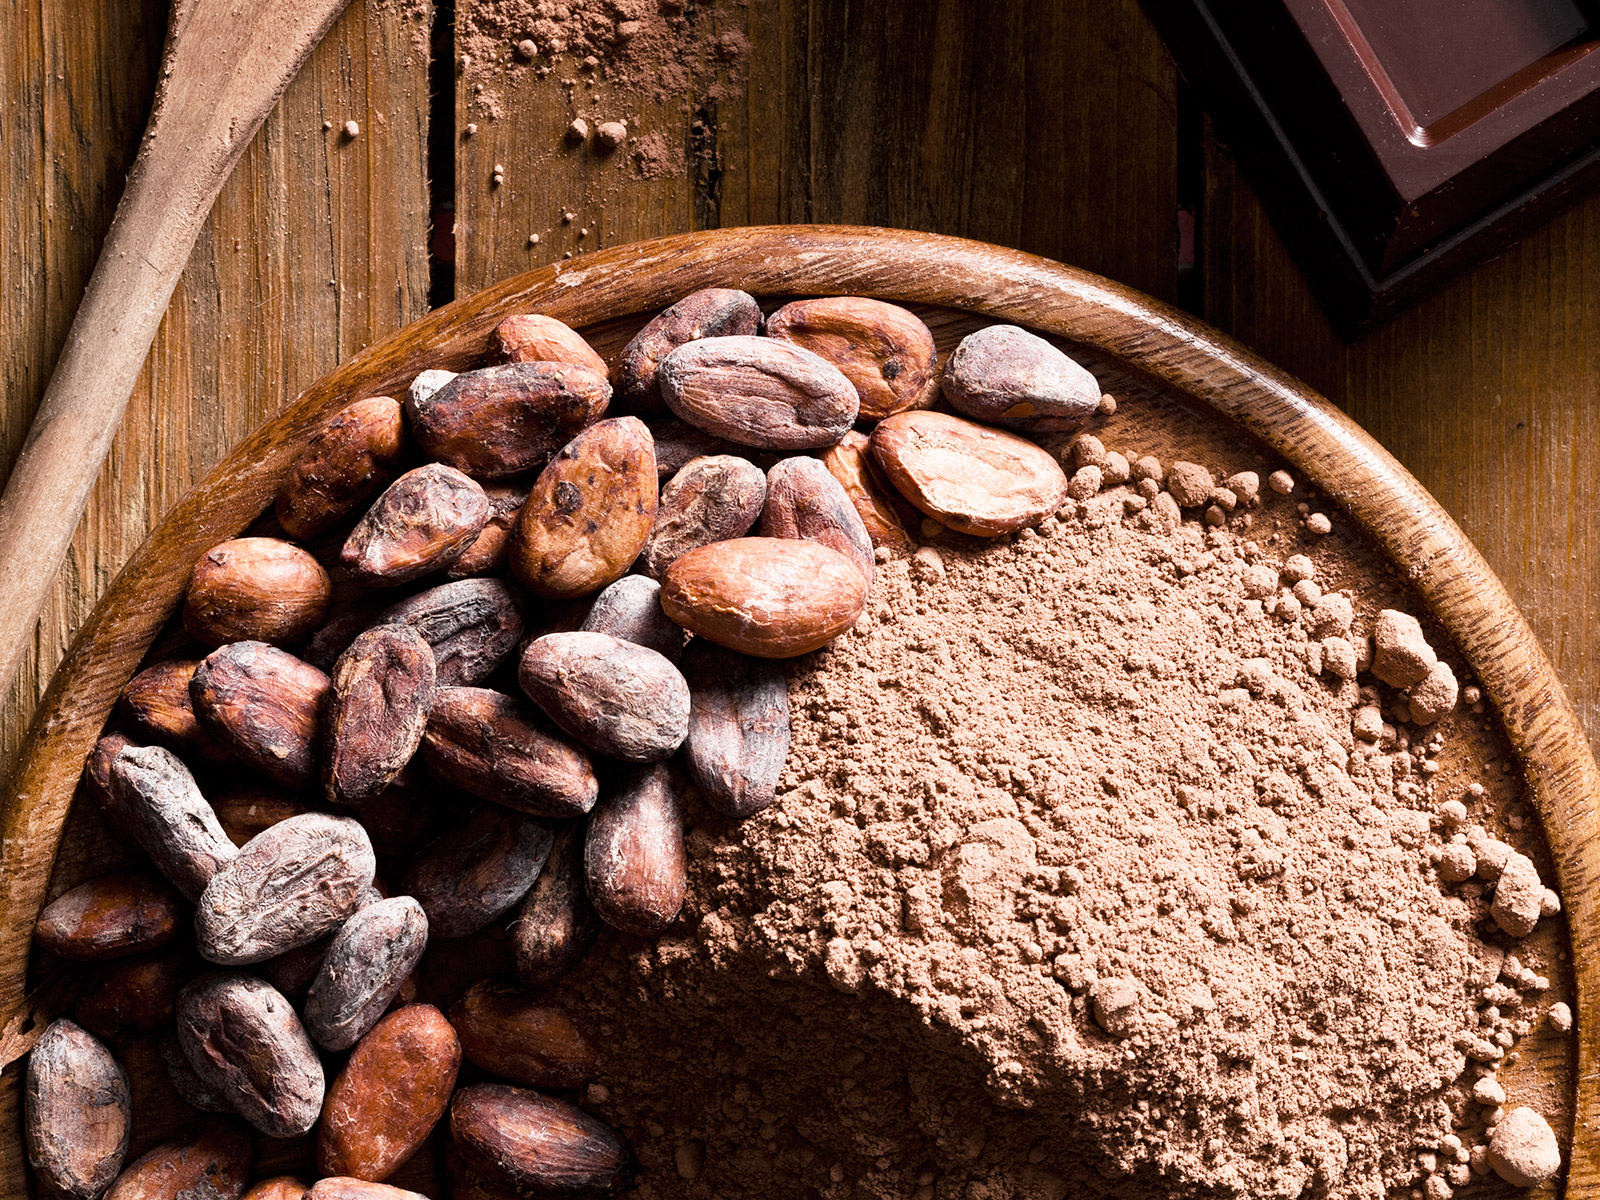 Hershey Won't Source Cocoa from Areas with New Deforestation